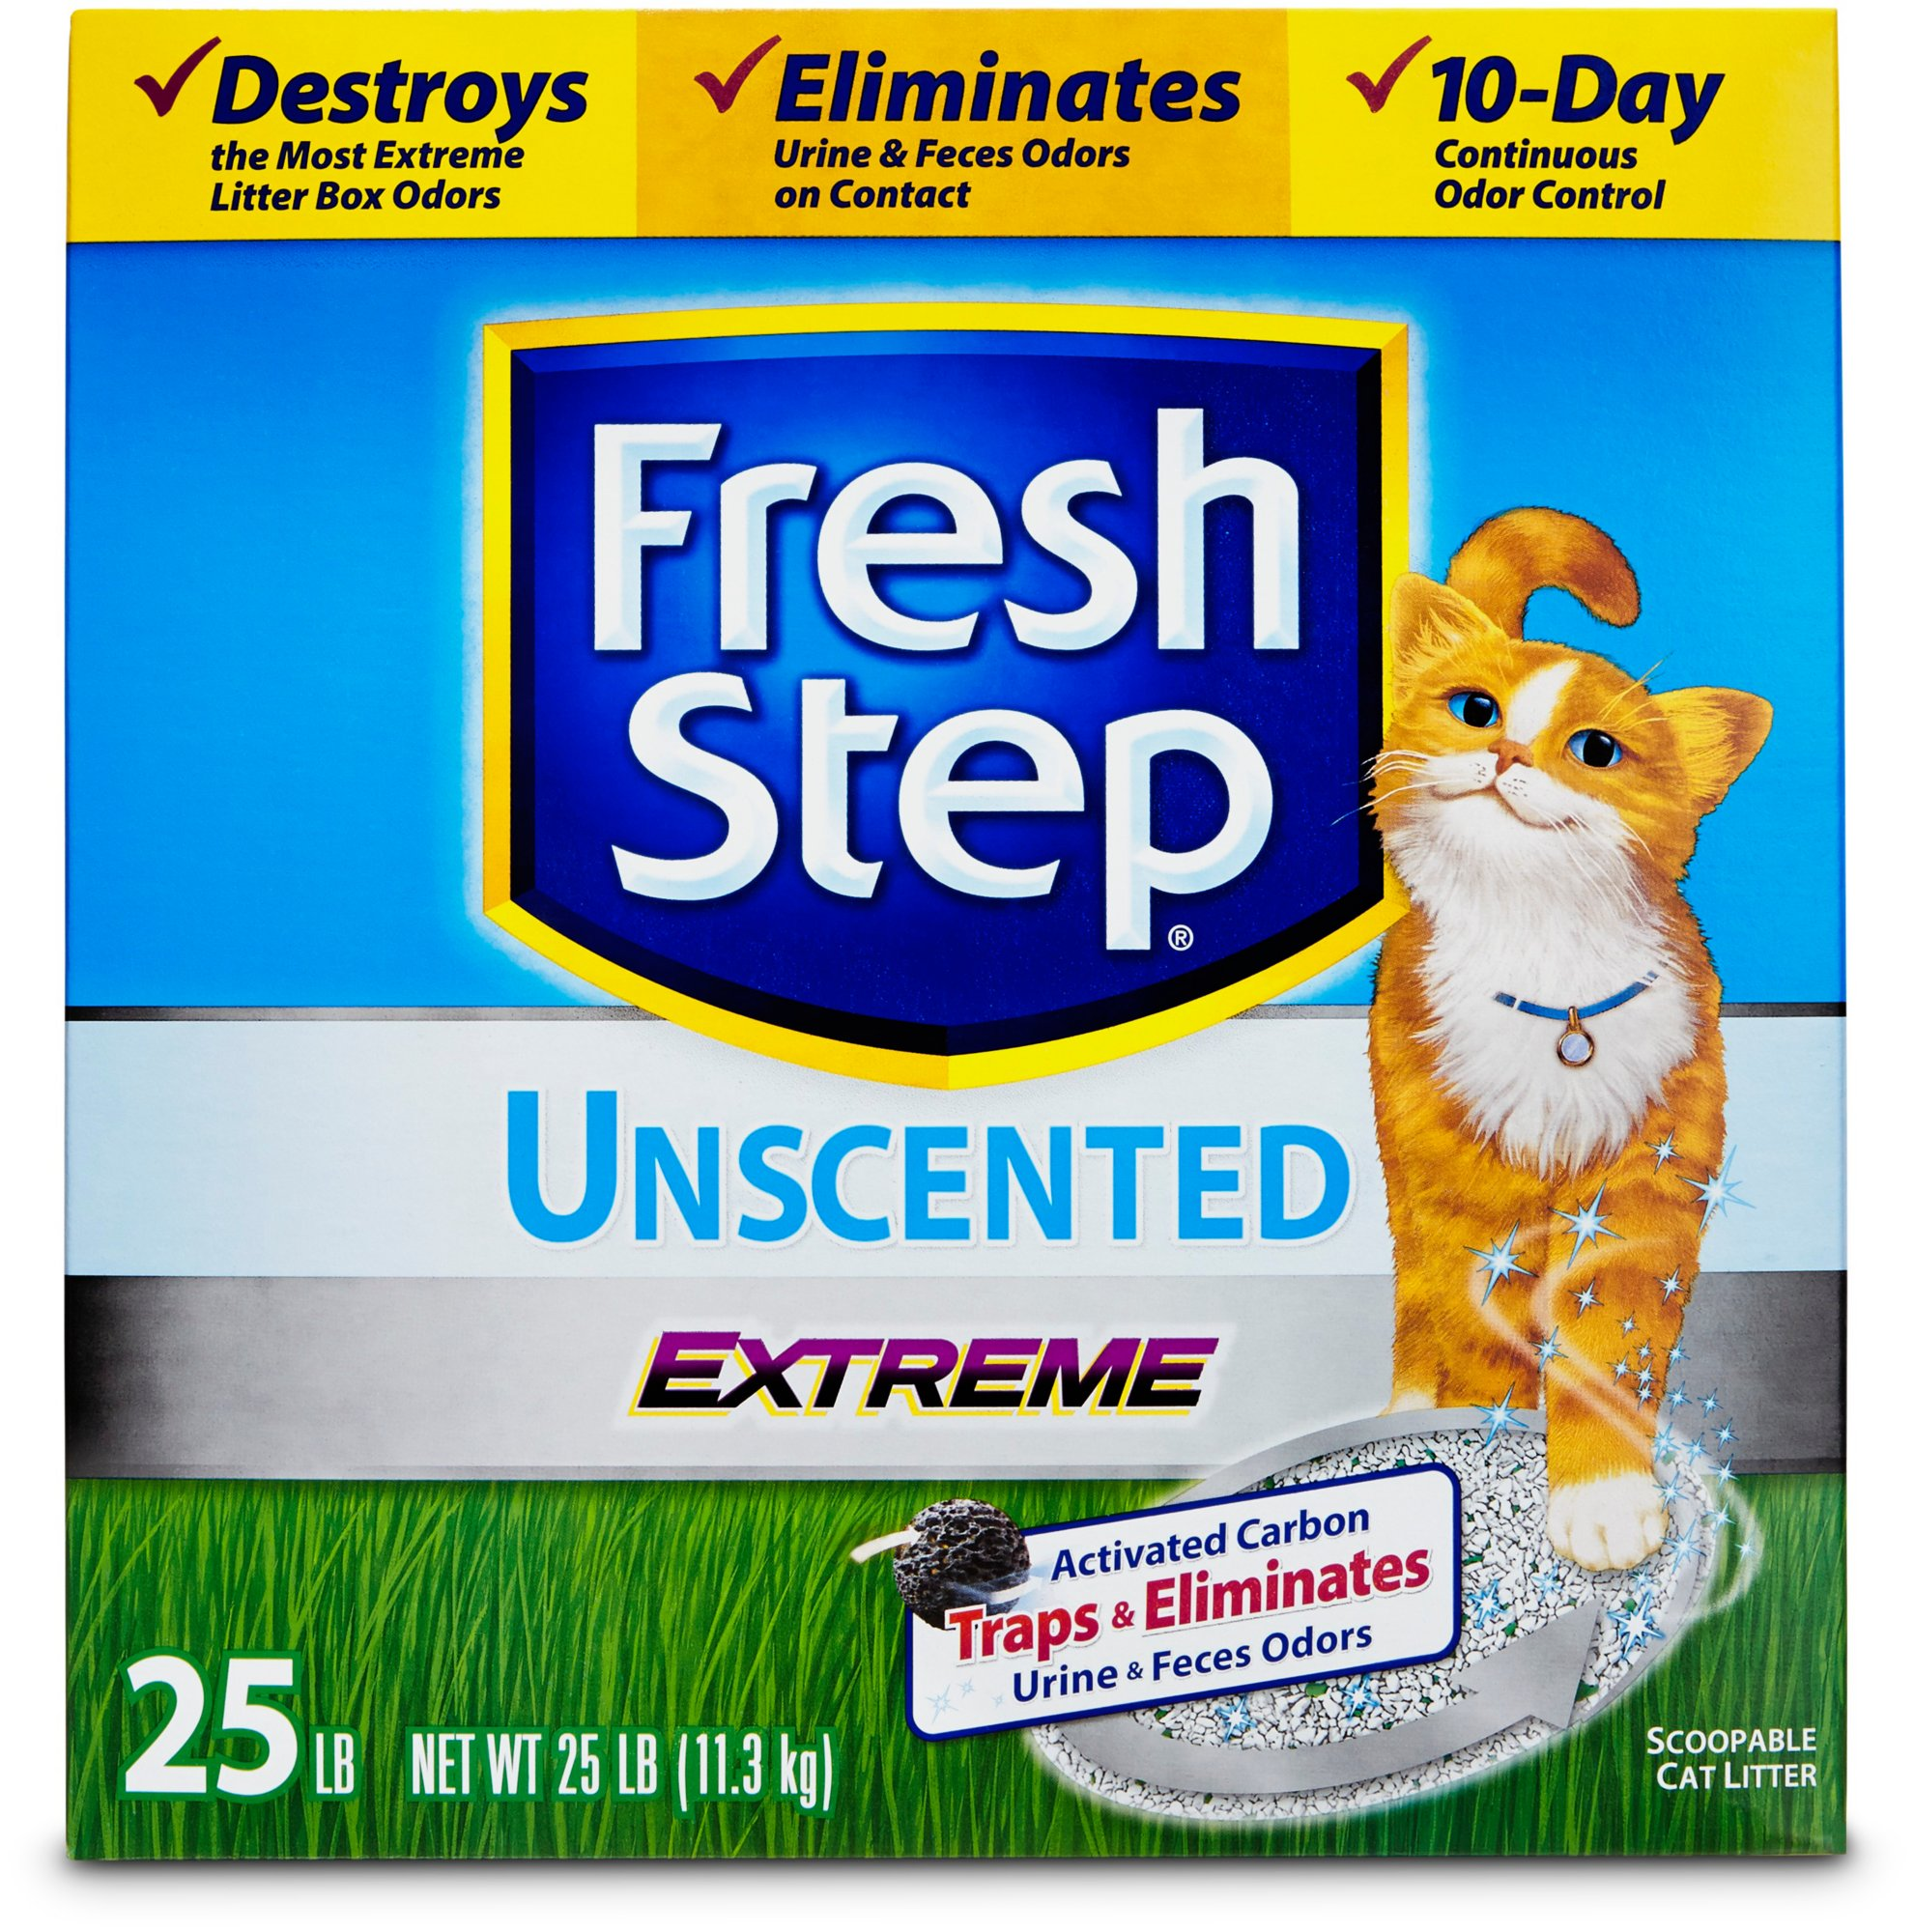 ad analysis fresh steps odor shield Shop for undefined at kroger find quality products to add to your next in-store or clicklist order.